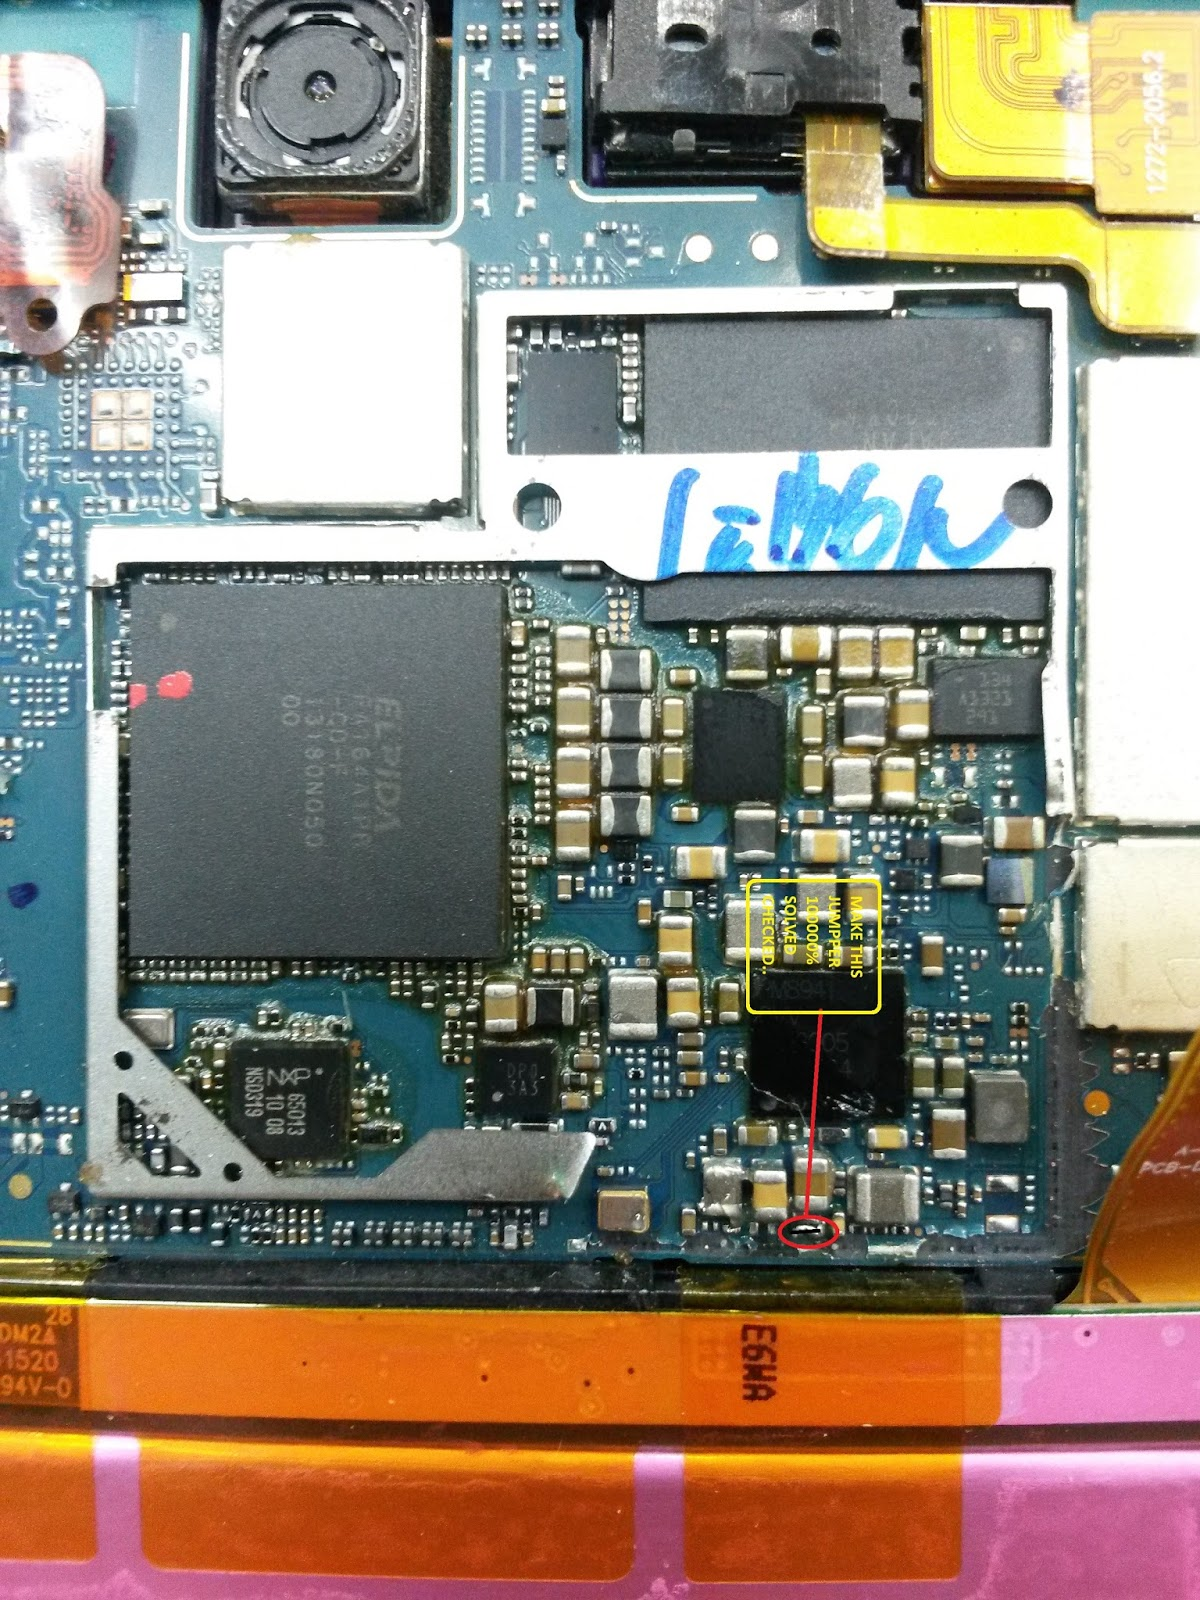 Remarkable Xperia Z Circuit Diagram Wiring Library Wiring Digital Resources Funapmognl